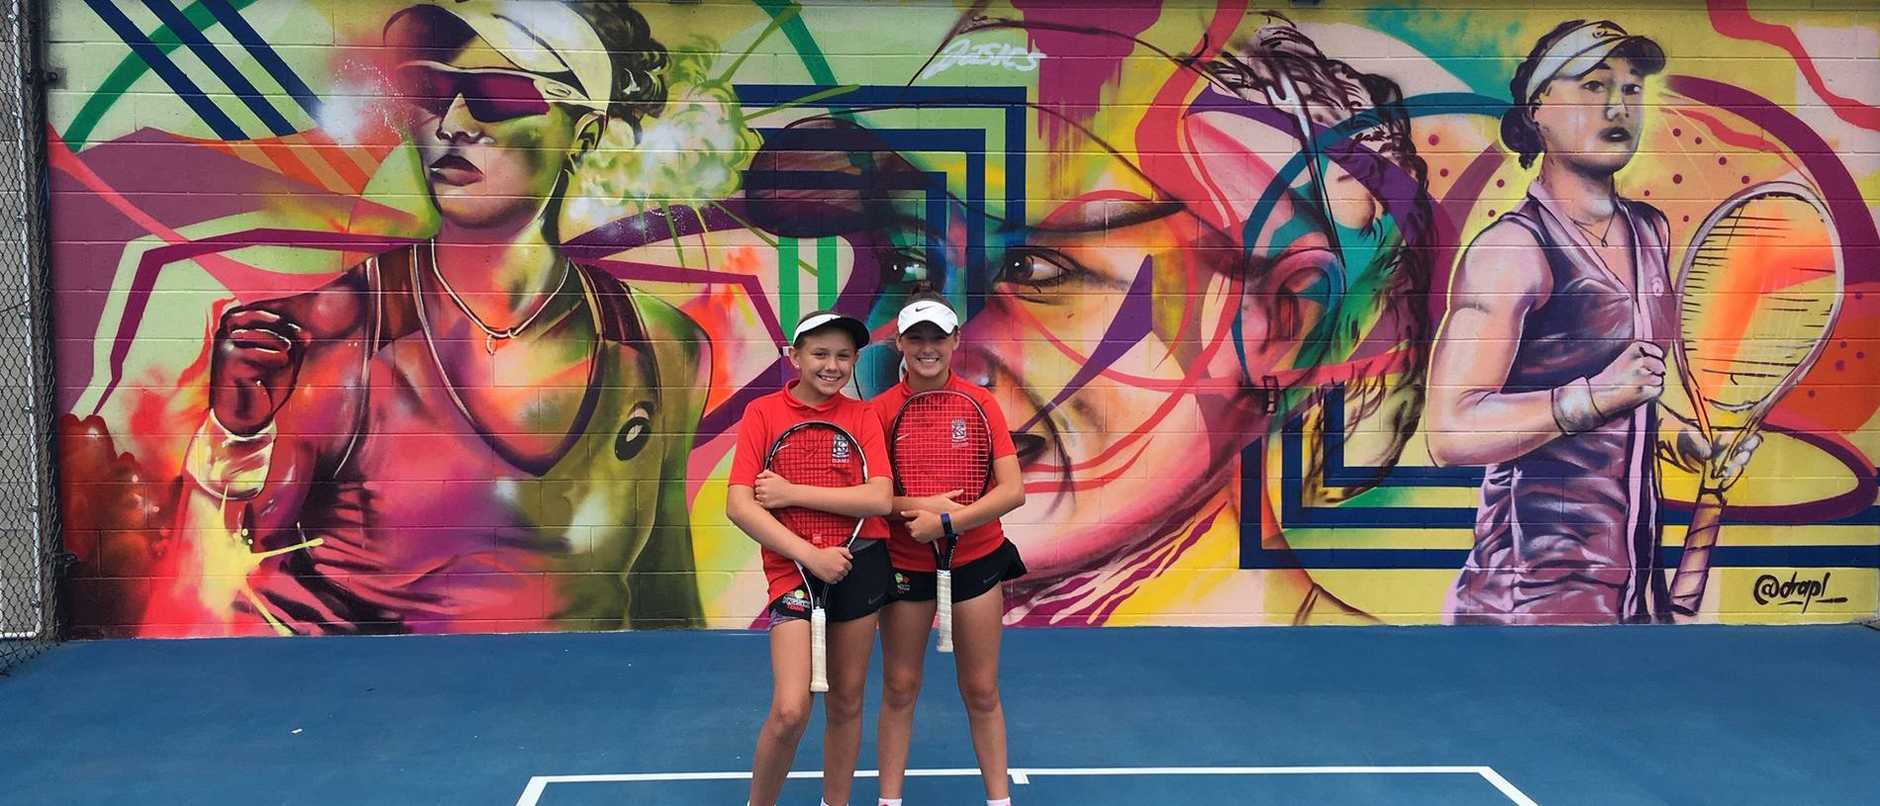 Kelvin Grove State High School tennis players Nicola Schoeman, left and Ella Pittendreigh at the unveiling of murals for Sam Stosur and Ashleigh Barty.